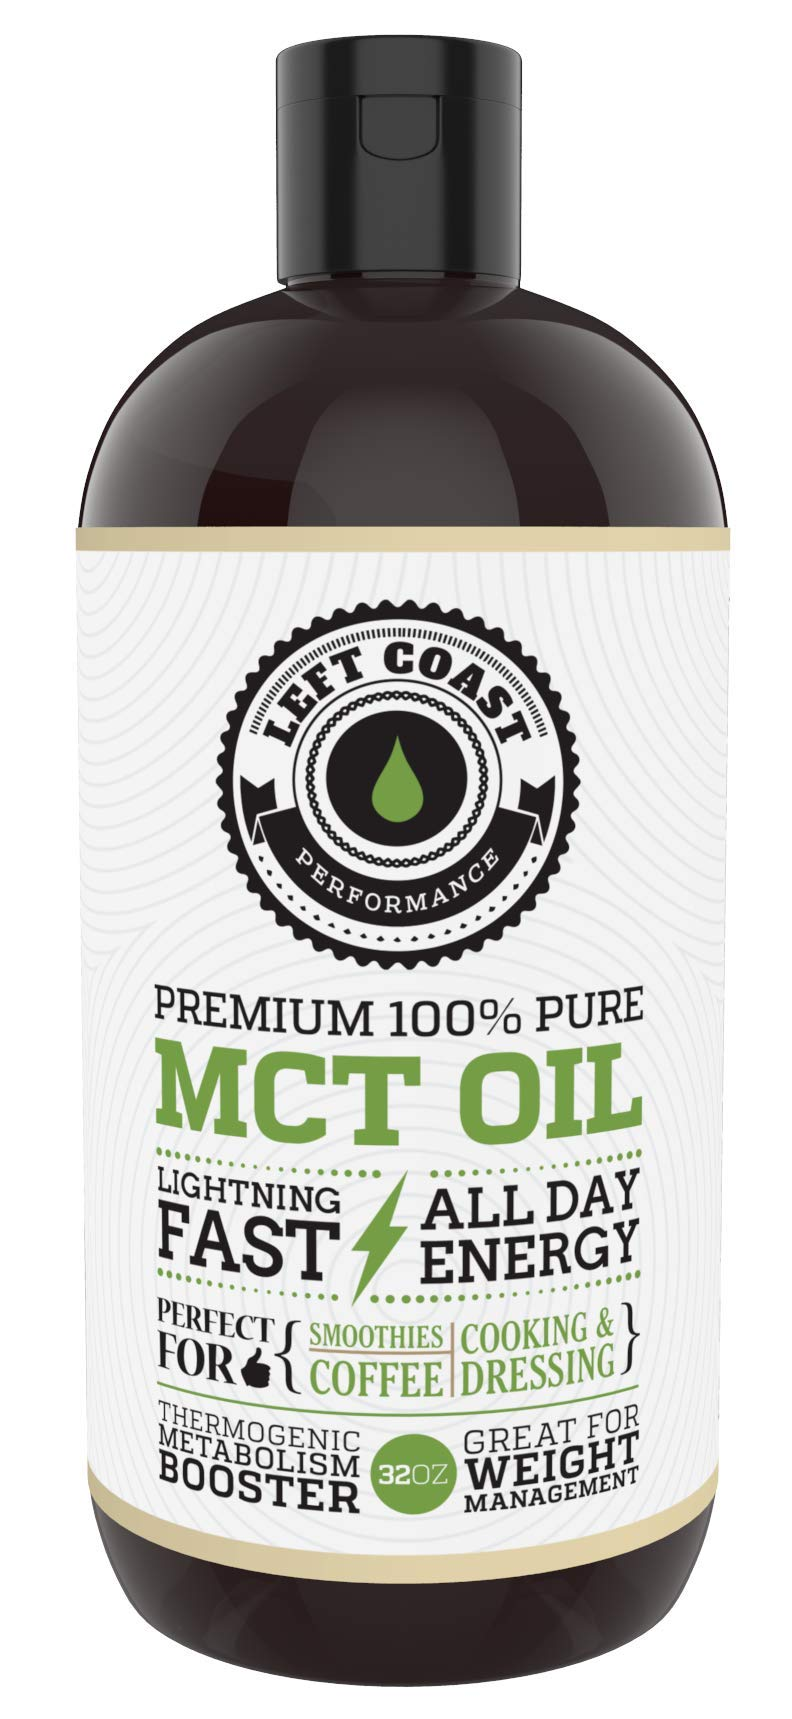 MCT Oil Keto derived only from Sustainable Coconuts (32oz). C8 and C10. Keto Diet   Paleo Friendly. Each Batch is Independently Tested (32oz)